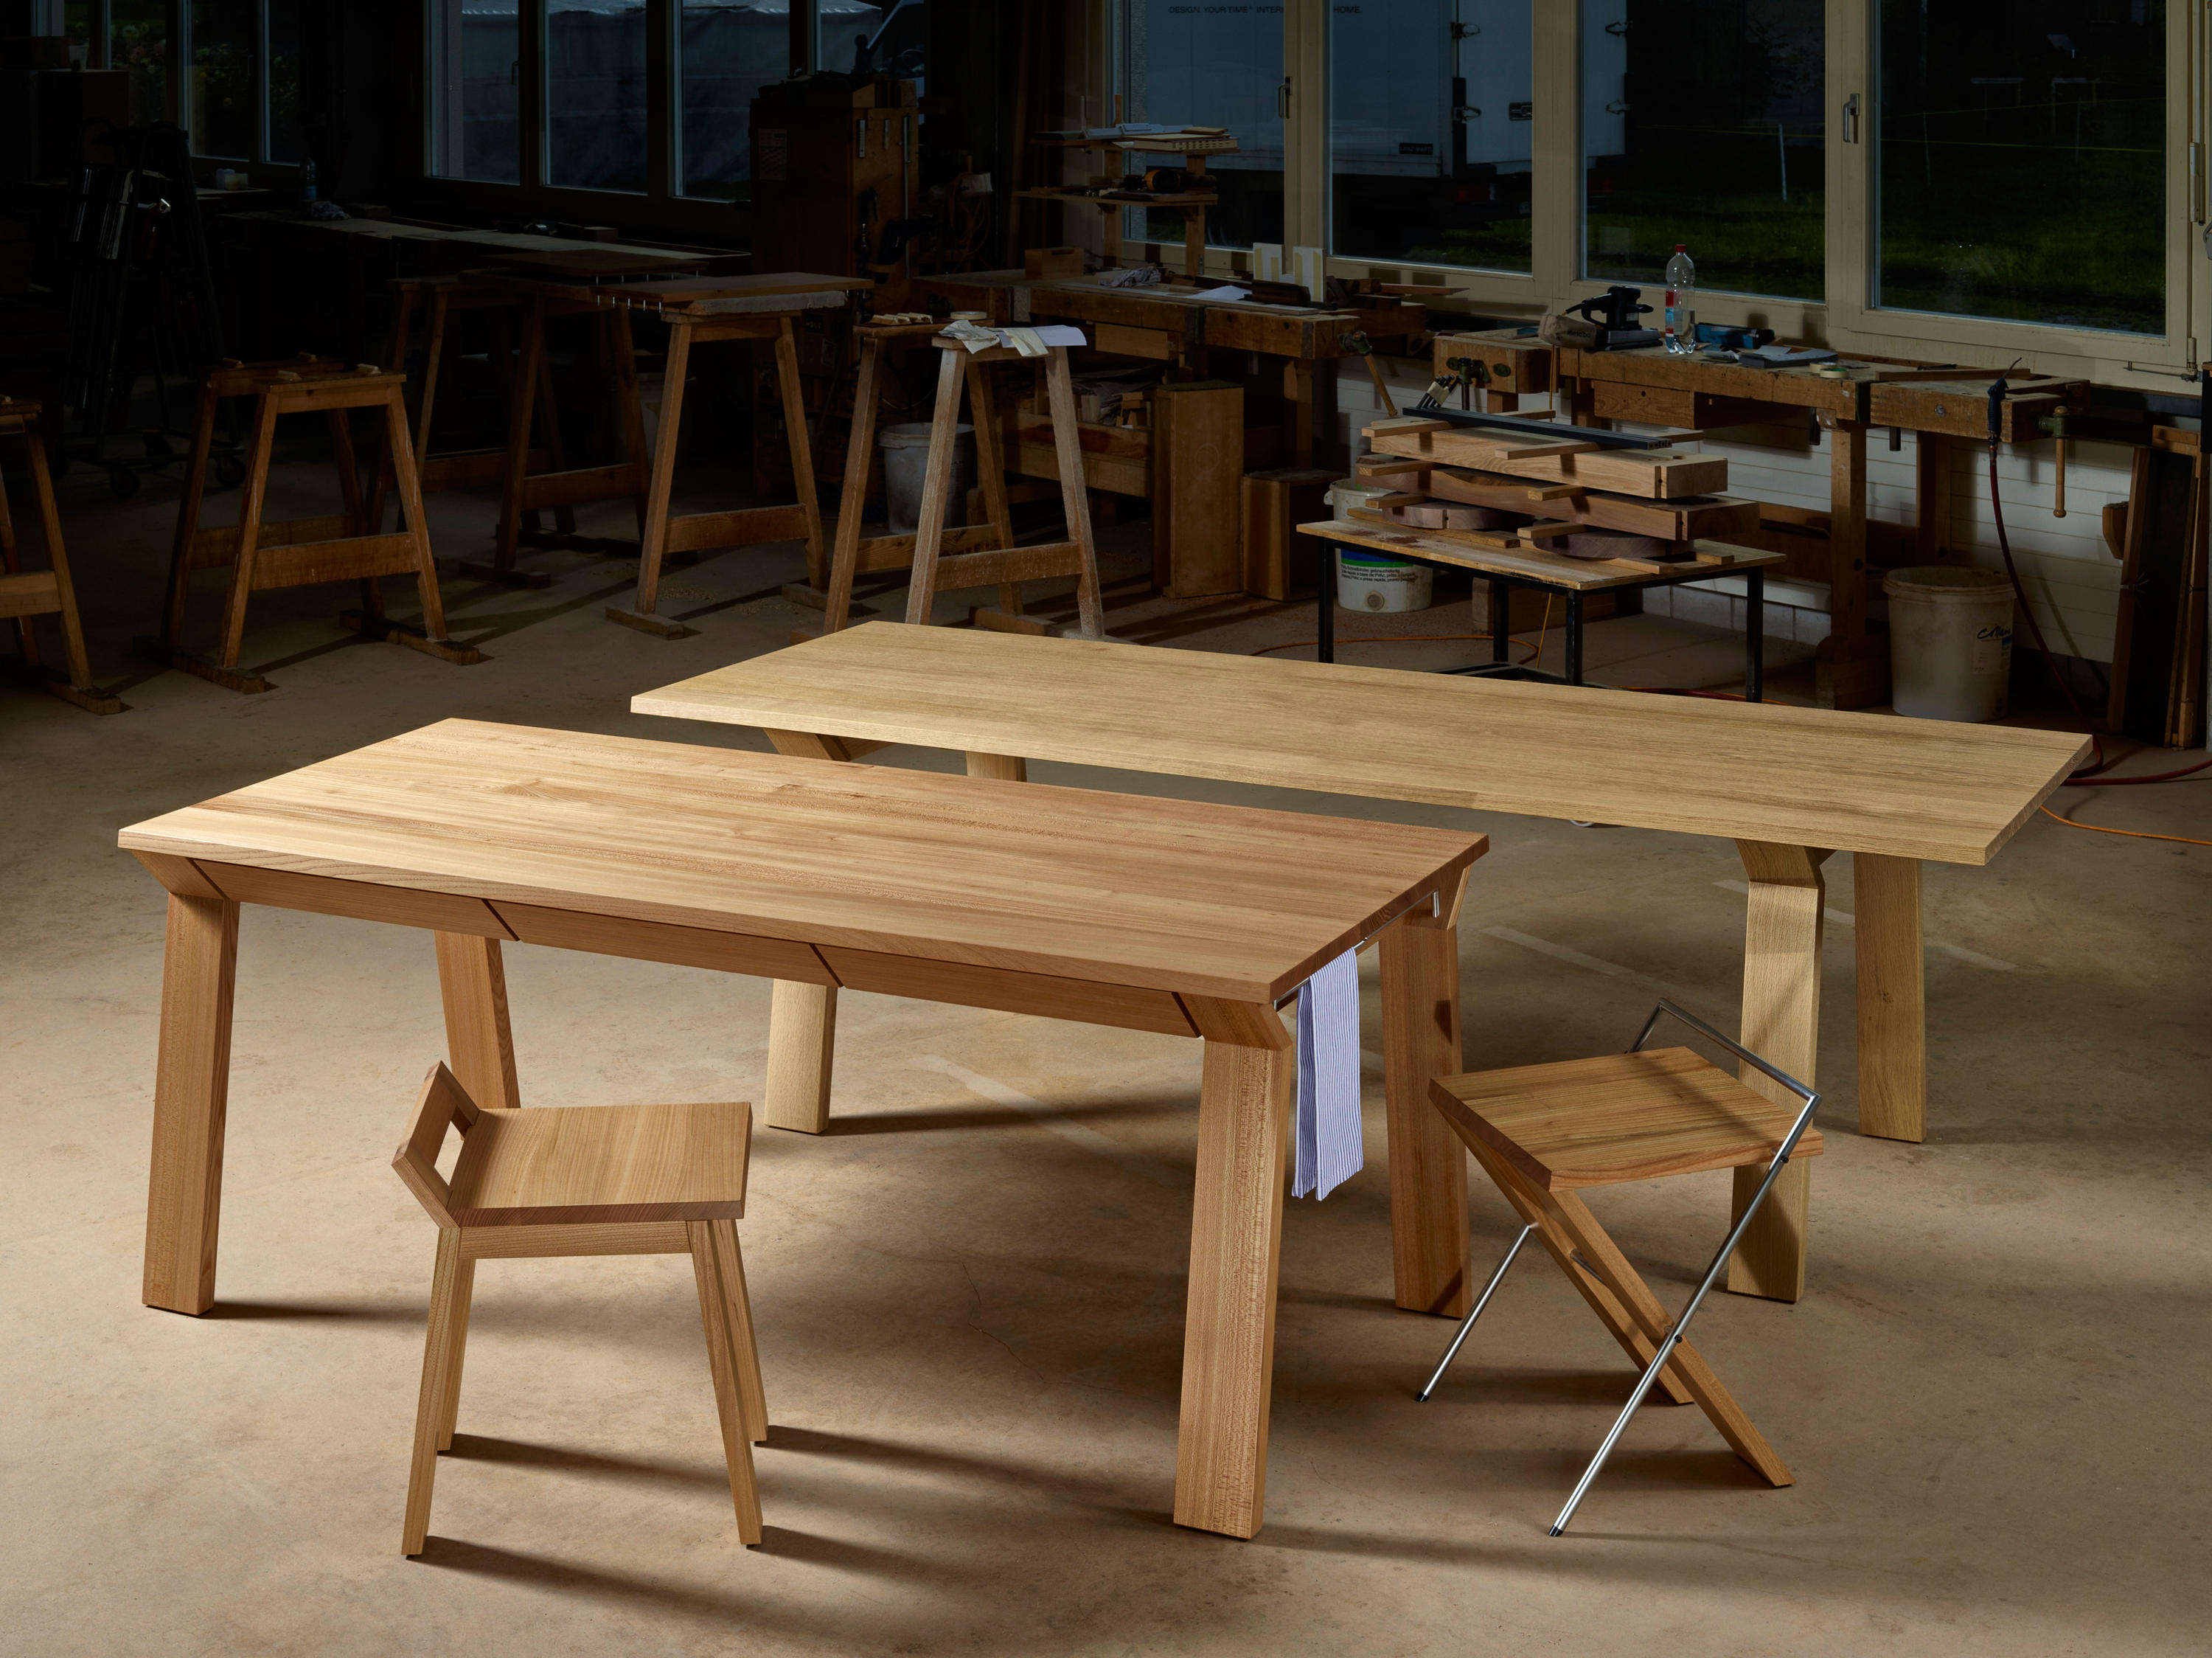 IGN. LIVING. - Dining tables from Ign. Design.   Architonic